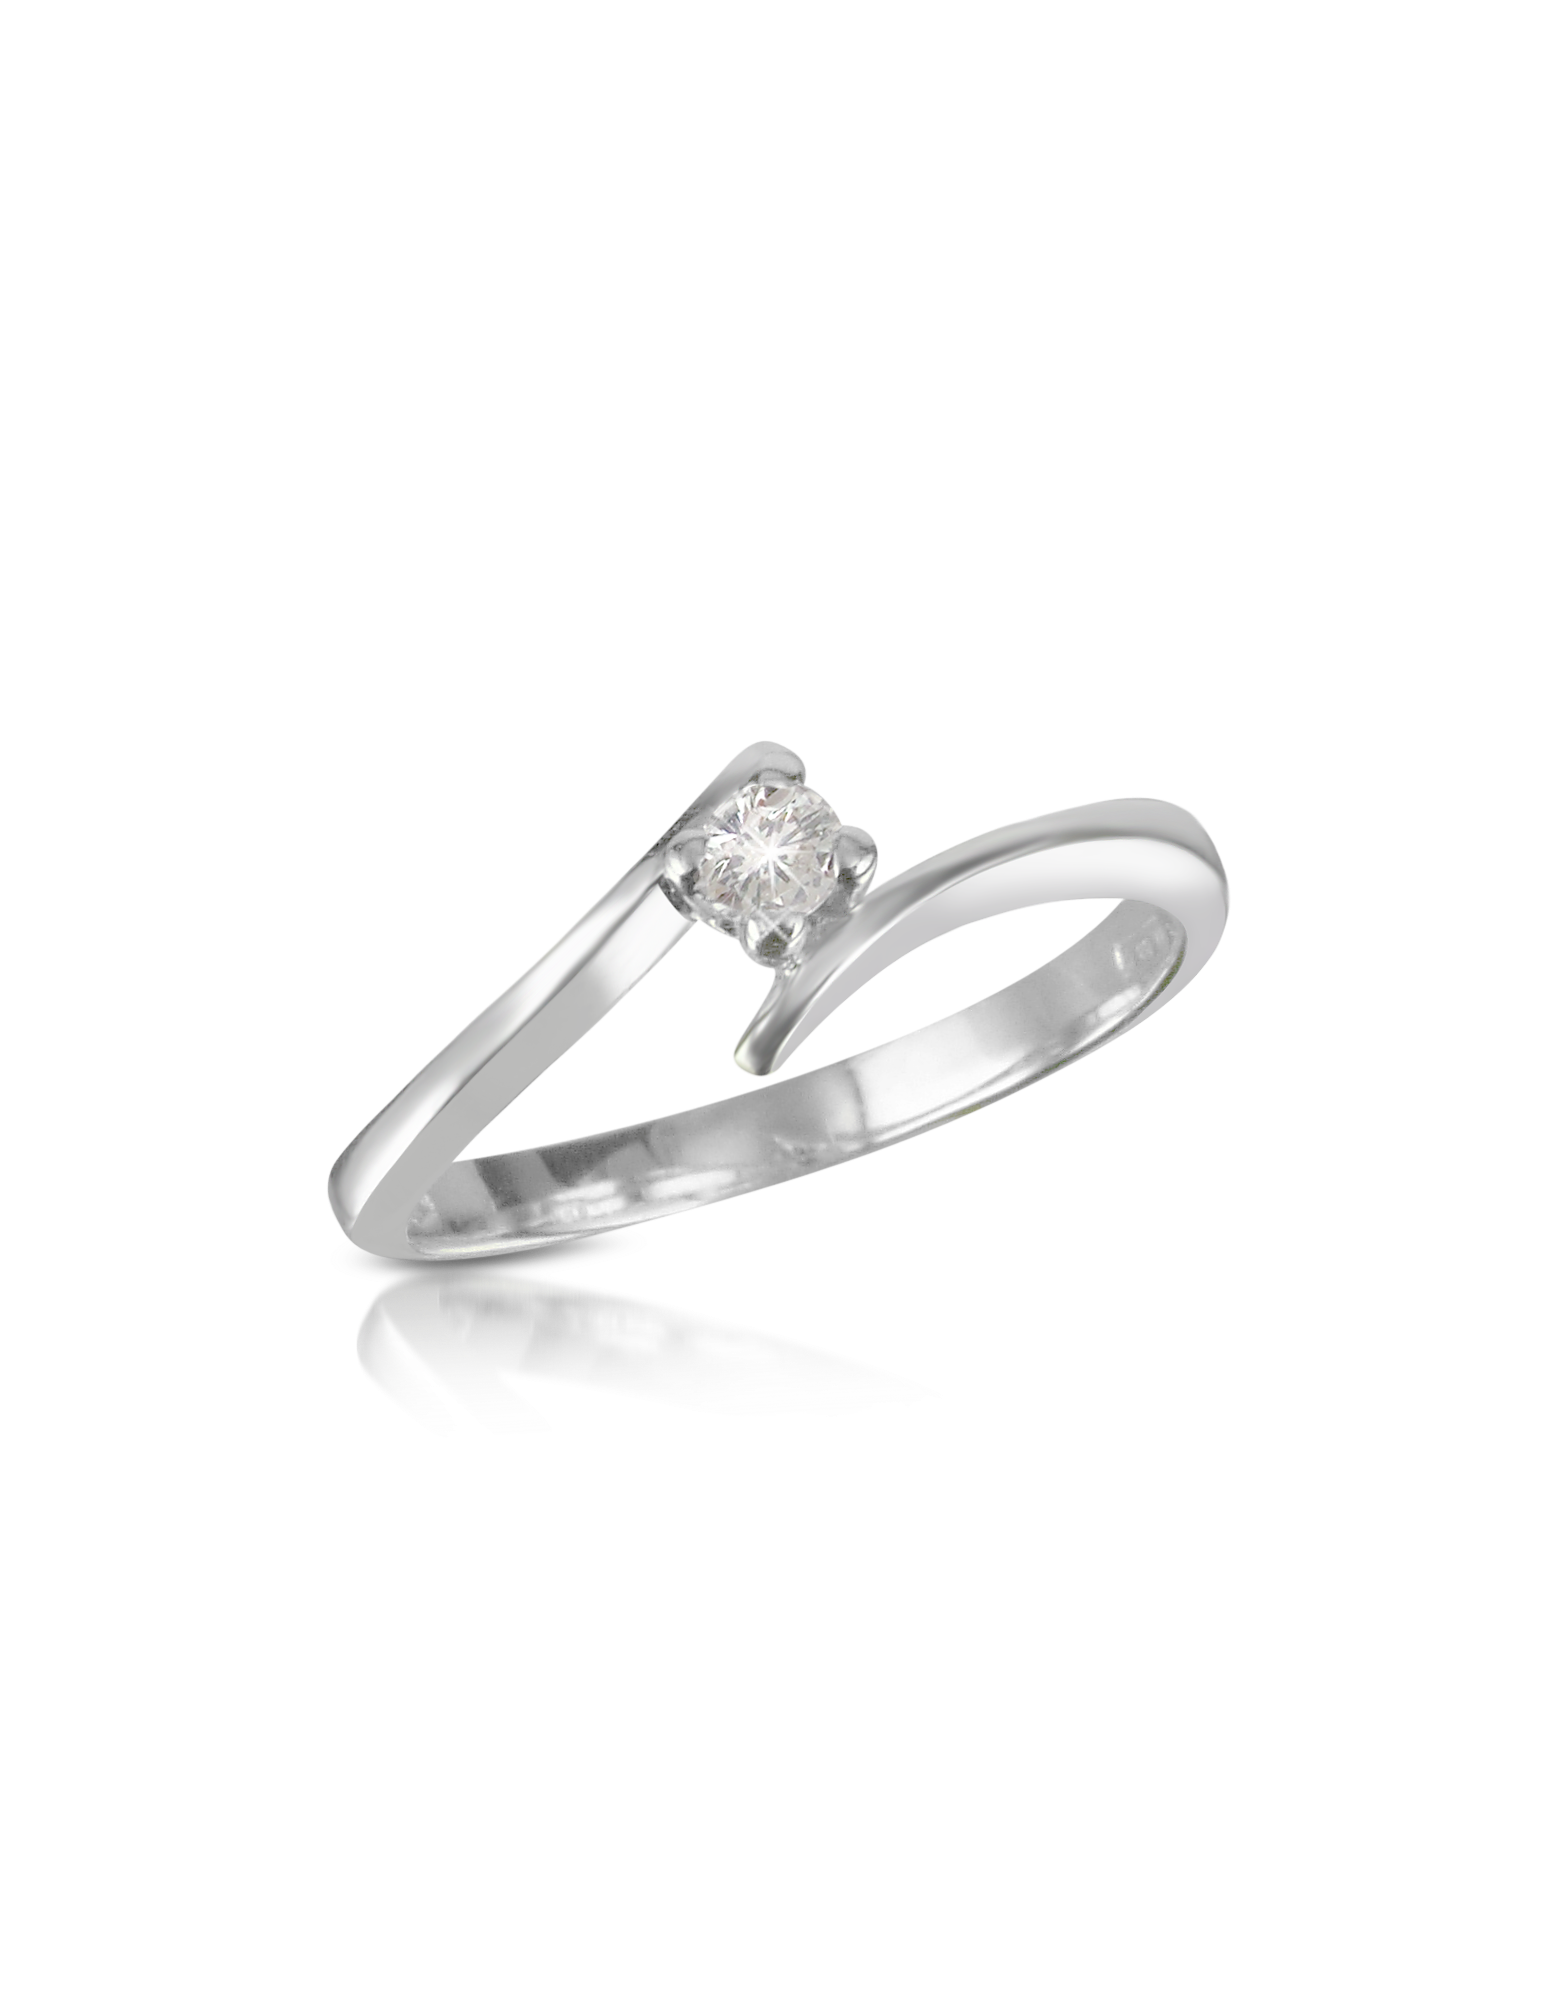 Image of 0.10 ct Diamond Solitaire Ring